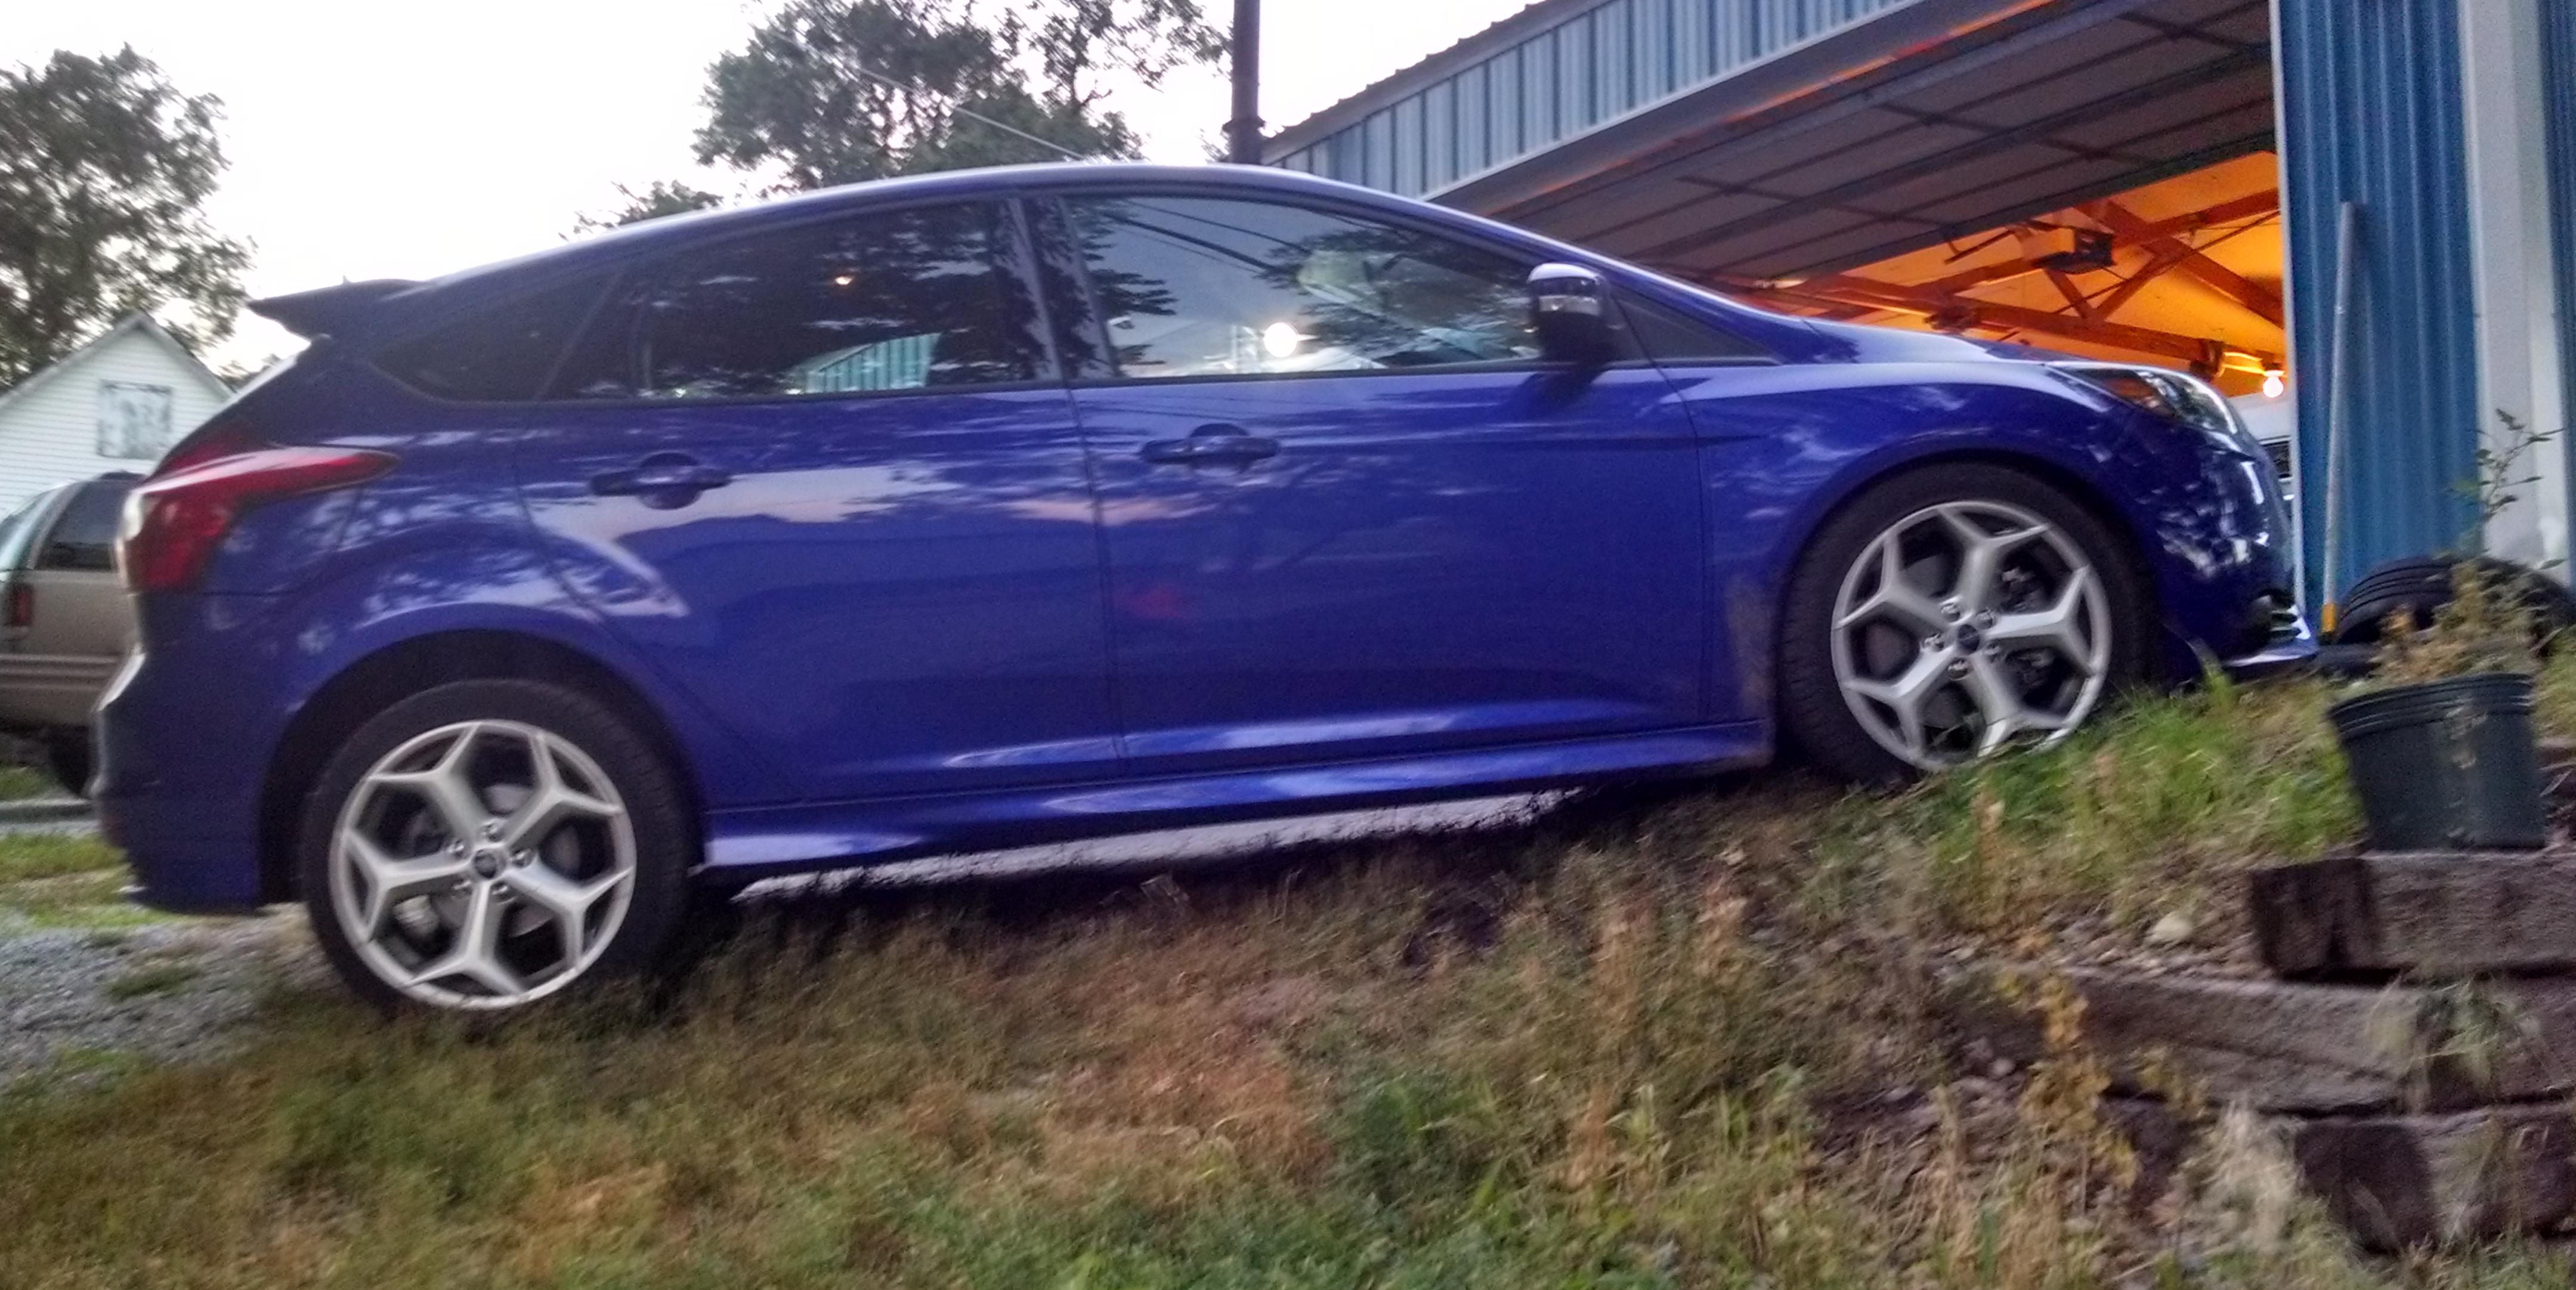 billy02's 2013 Ford Focus-ST